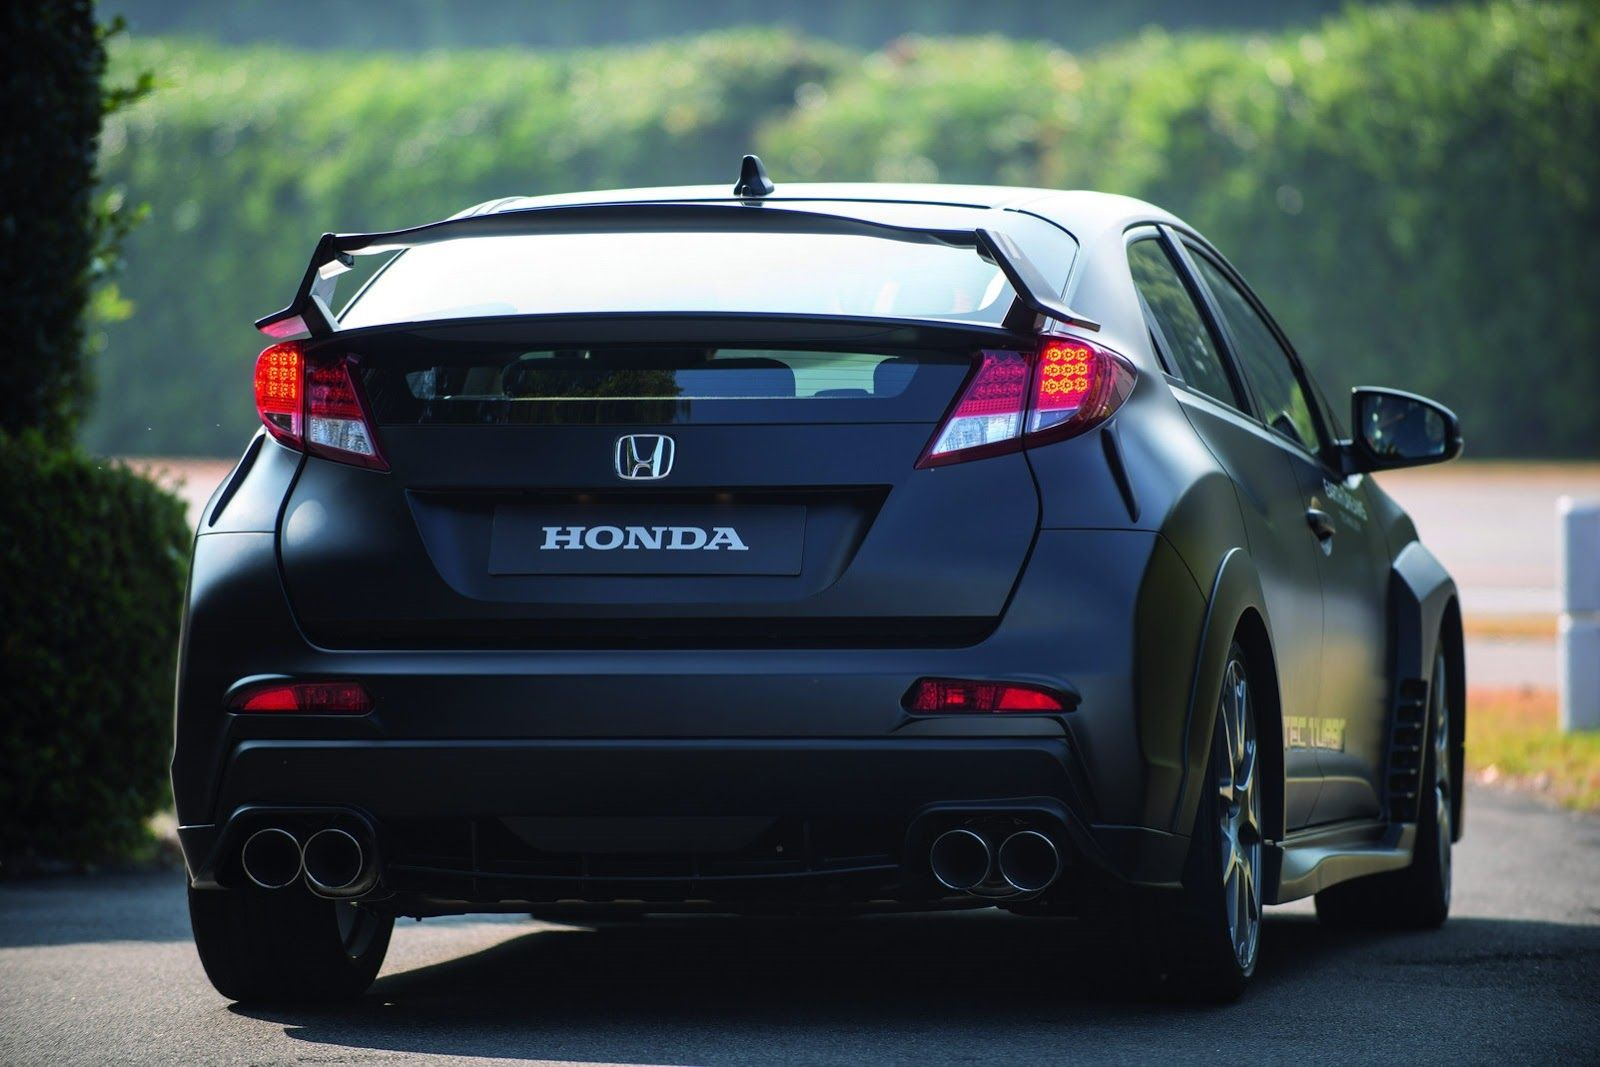 2015 Honda Civic Type R (European Model)